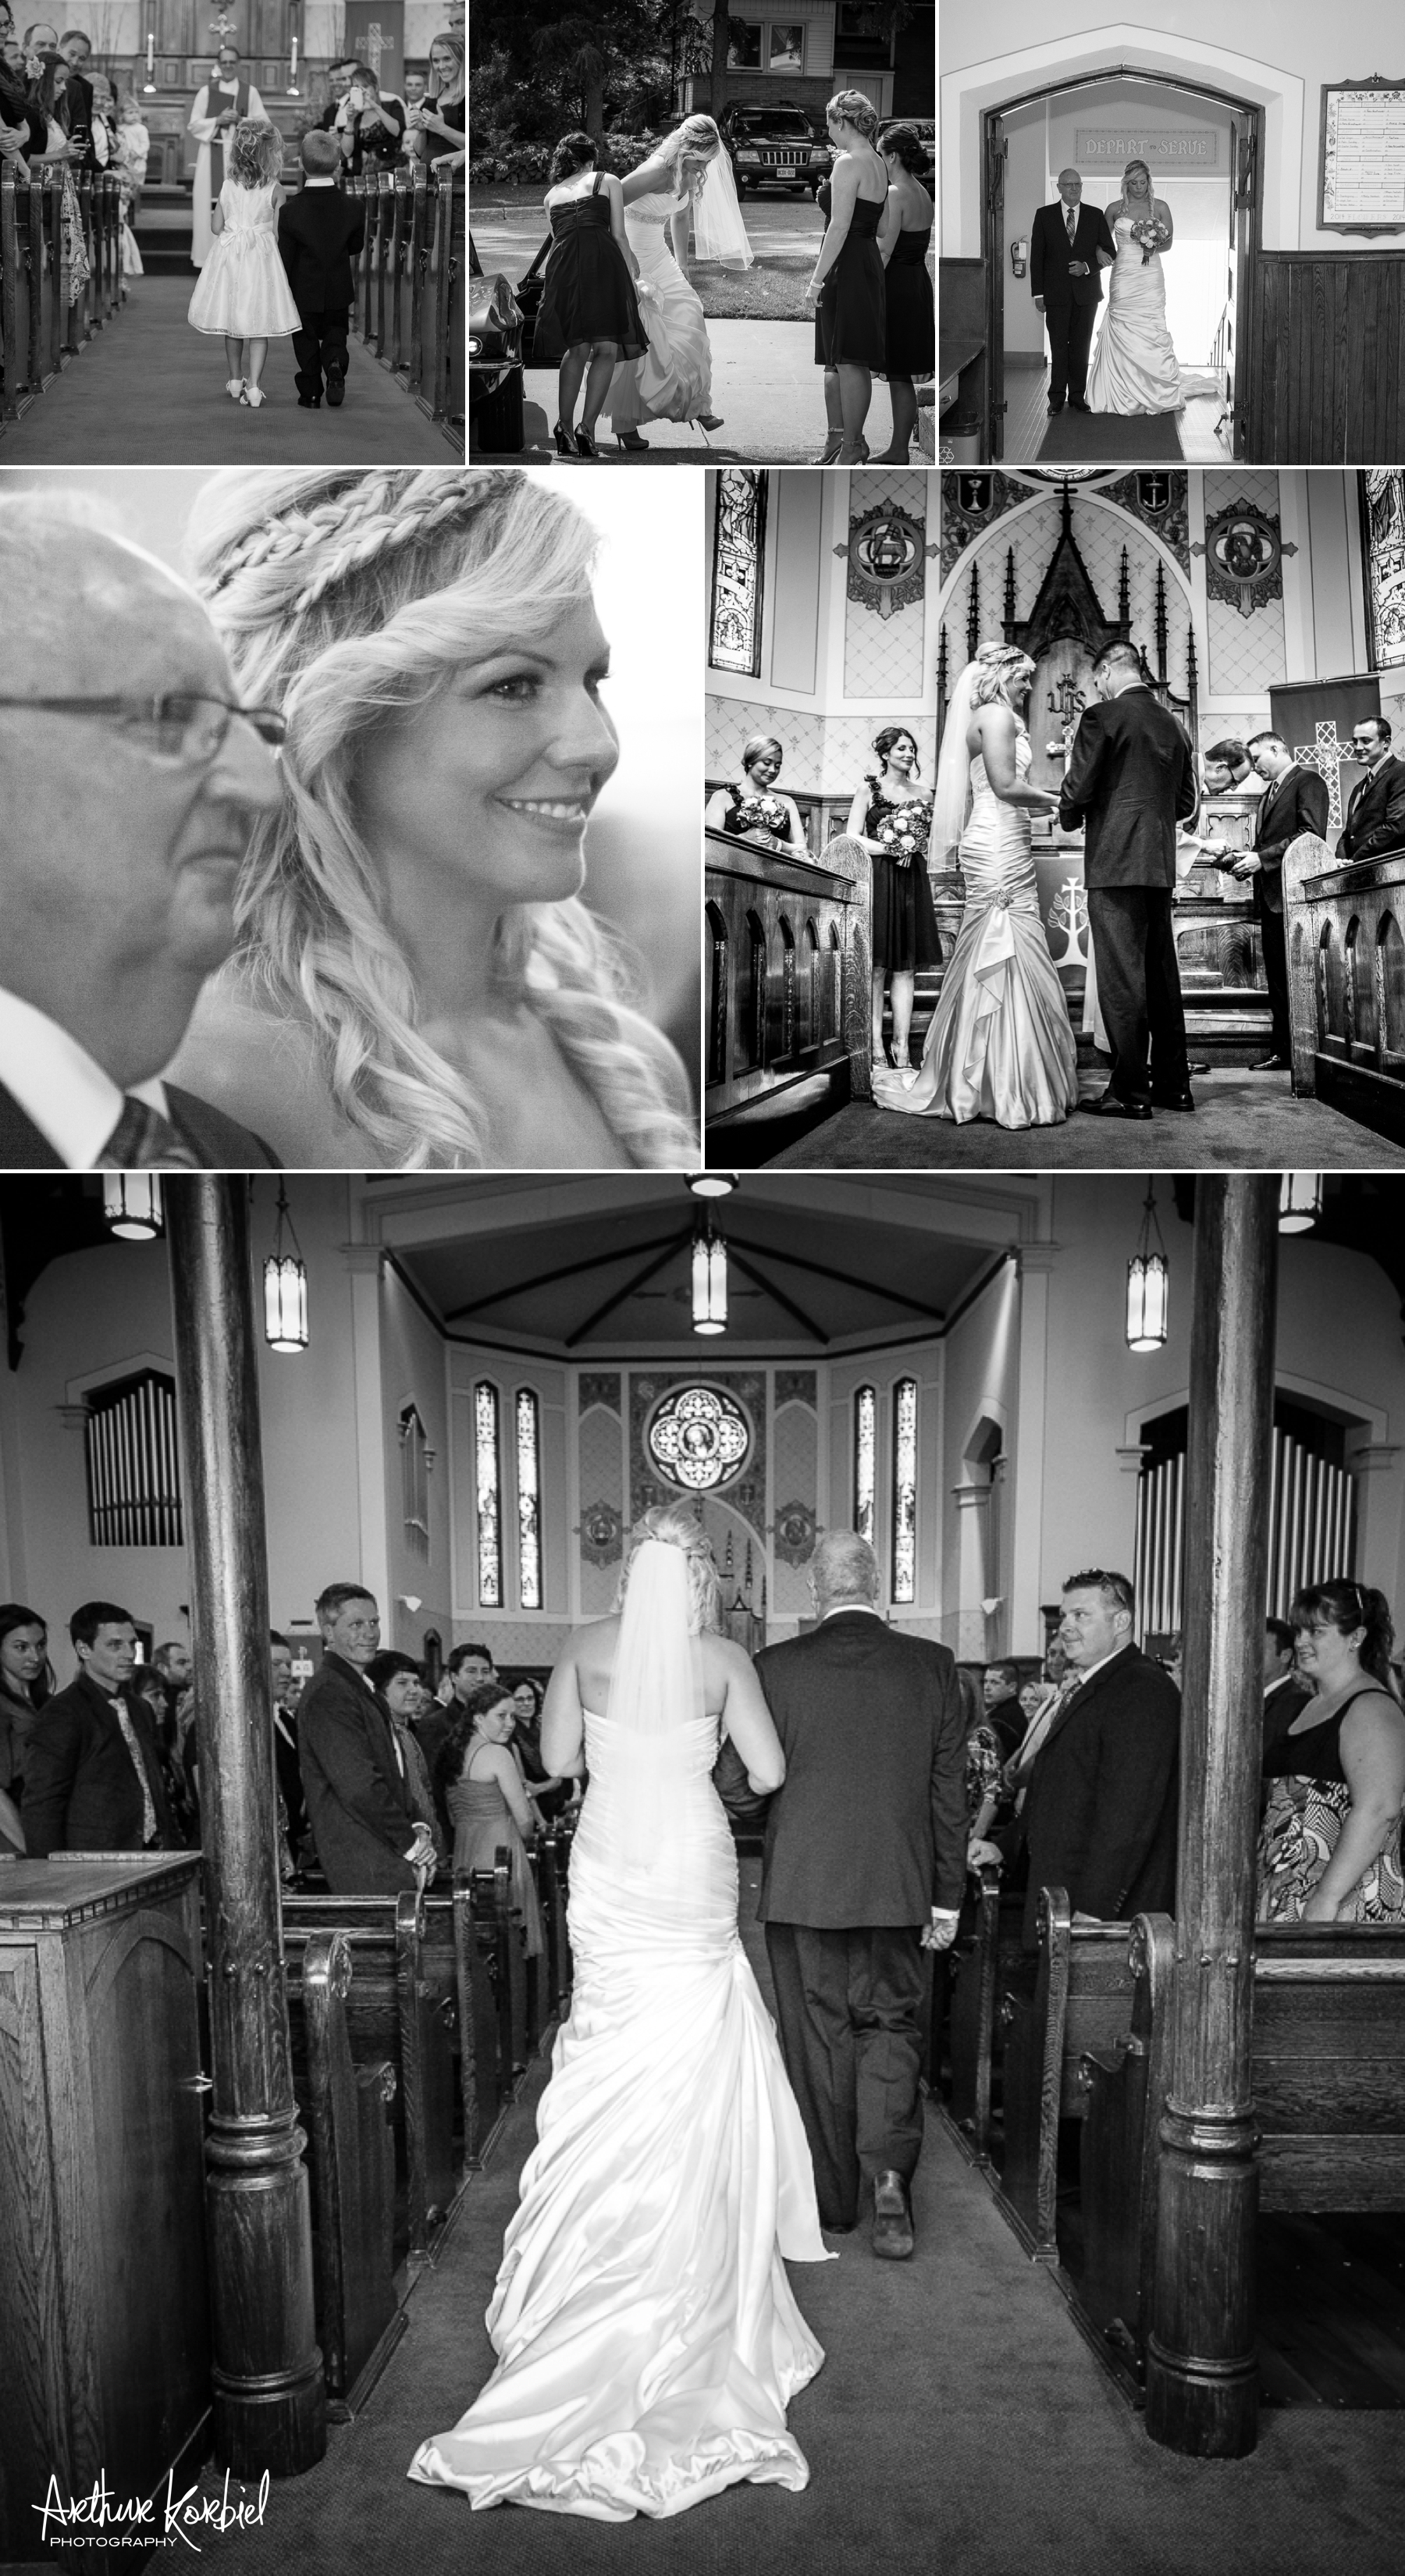 Arthur Korbiel Photography - London Wedding Photographer - Stone Willow Inn - St Marys & Stratford_017.jpg